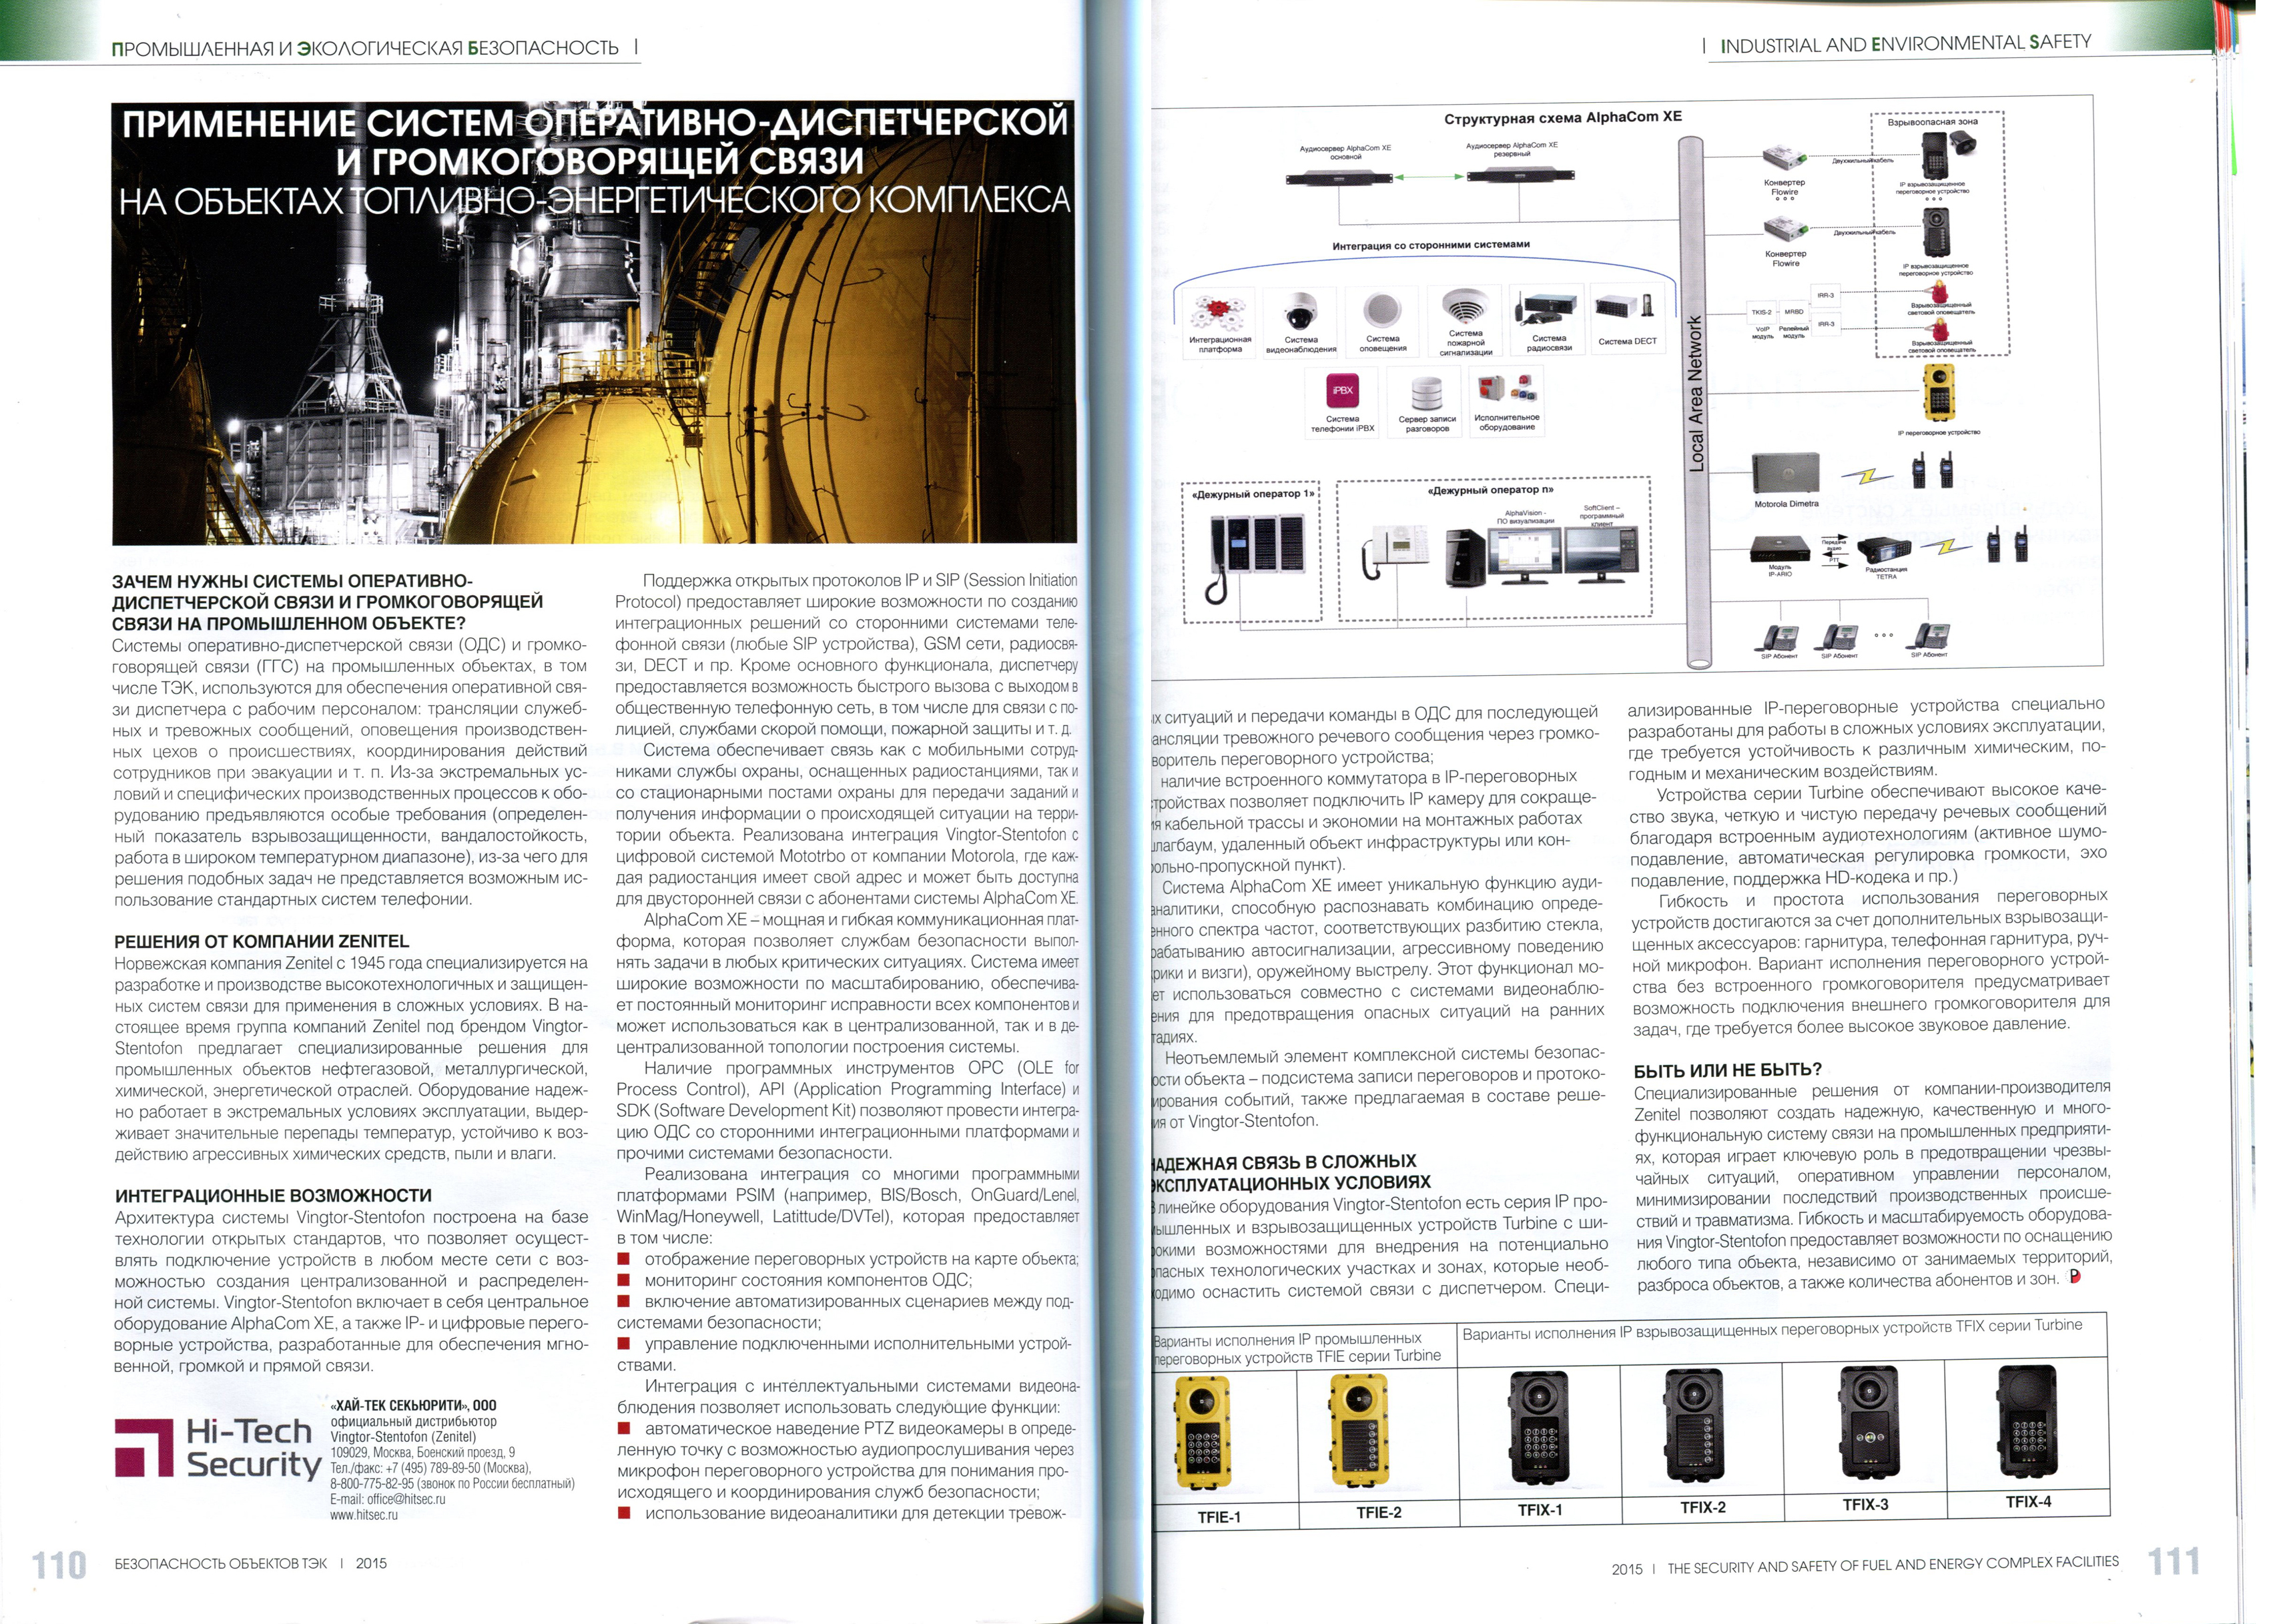 Vingtor-Stentofon is featured over three pages in the latest edition of TEK Magazine